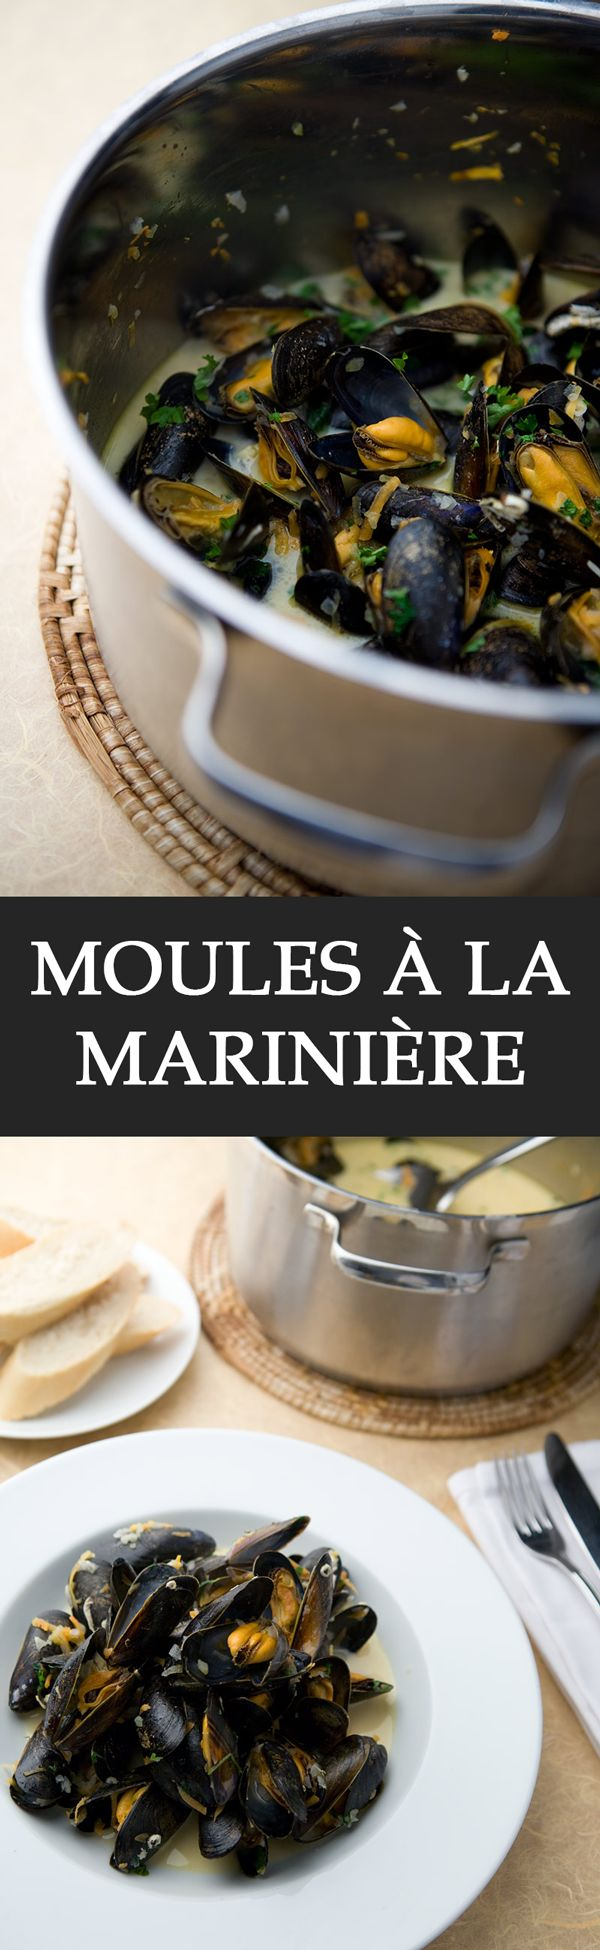 Moules à la marinière - Moules à la marinière are mussels which are gently flavoured with white wine, vegetables, vegetable stock and herbs like parsley. An incredibly simple but elegant recipe that's a hit in French and Belgian cuisine. You can try other versions too. Pair with a nice dry white wine and some fresh baguette. Enjoy.  #valentinesday #valentinesdaydinner #datenight #love #mussels #seafood